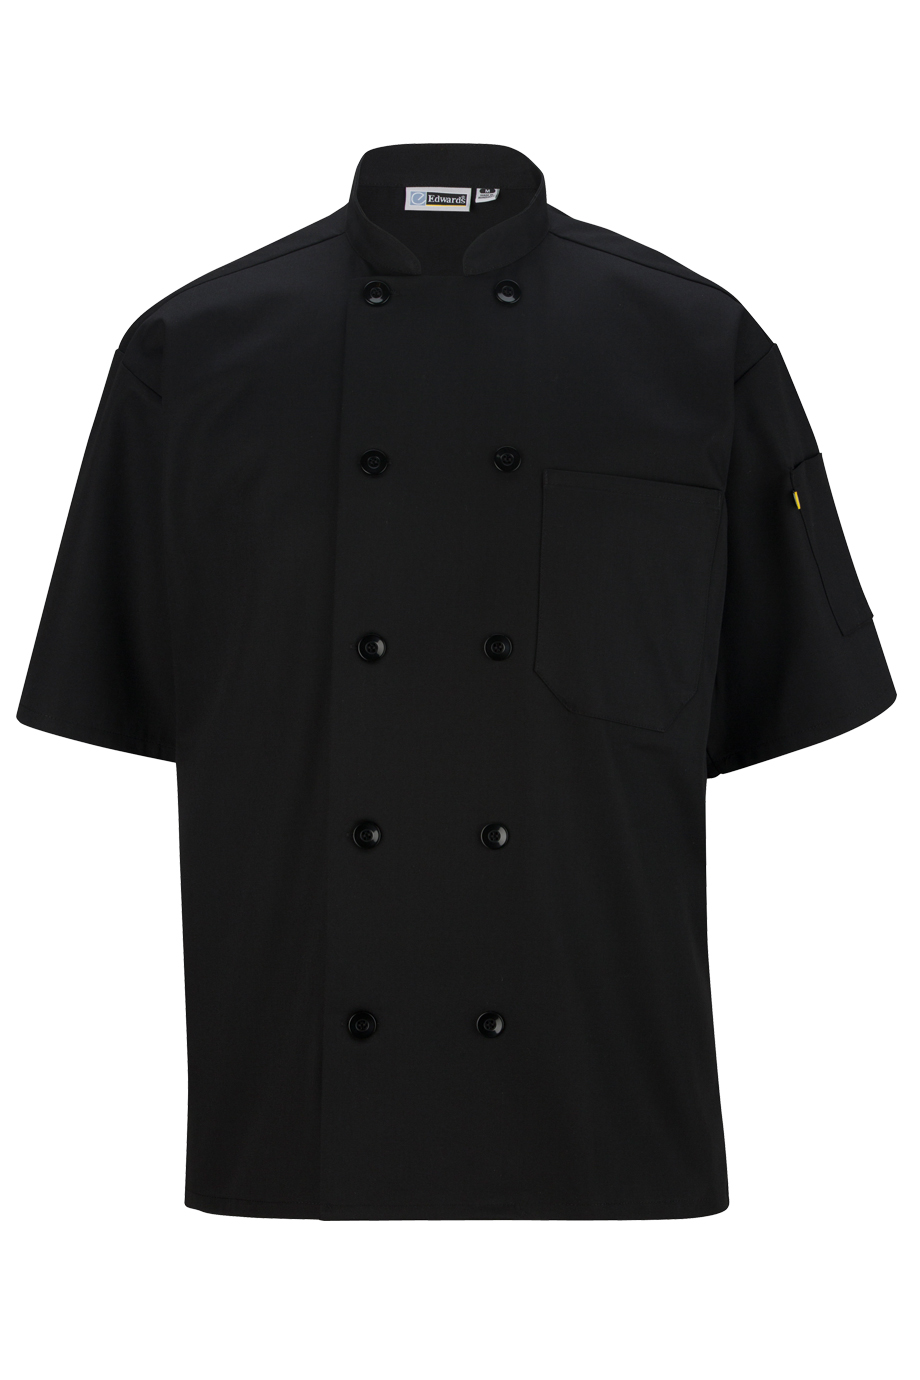 Black Plastic Button Short Sleeve Chef Coat-